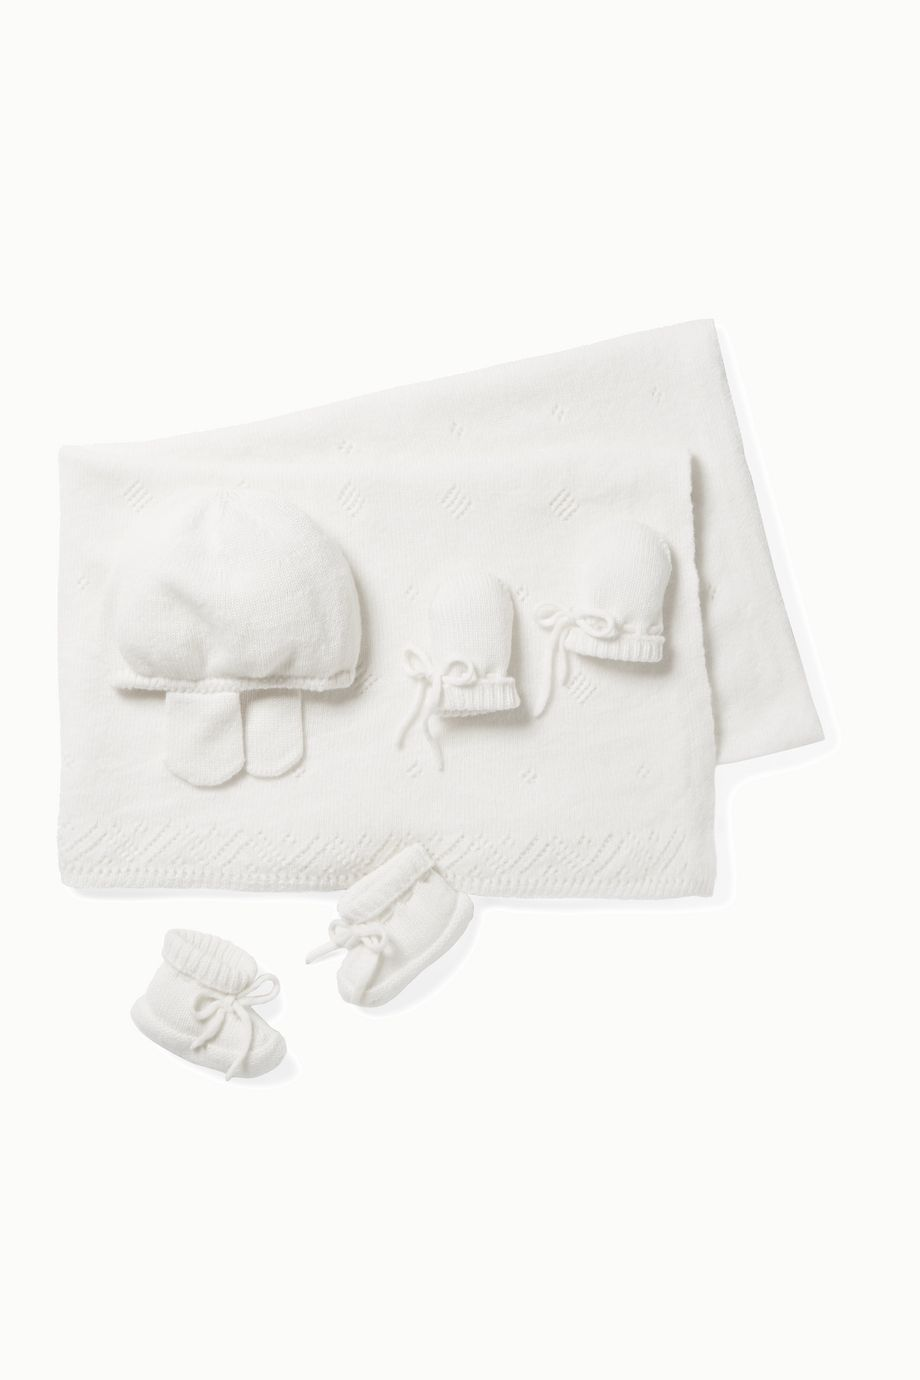 Johnstons of Elgin Kids Infant cashmere booties, hat, mittens and blanket set